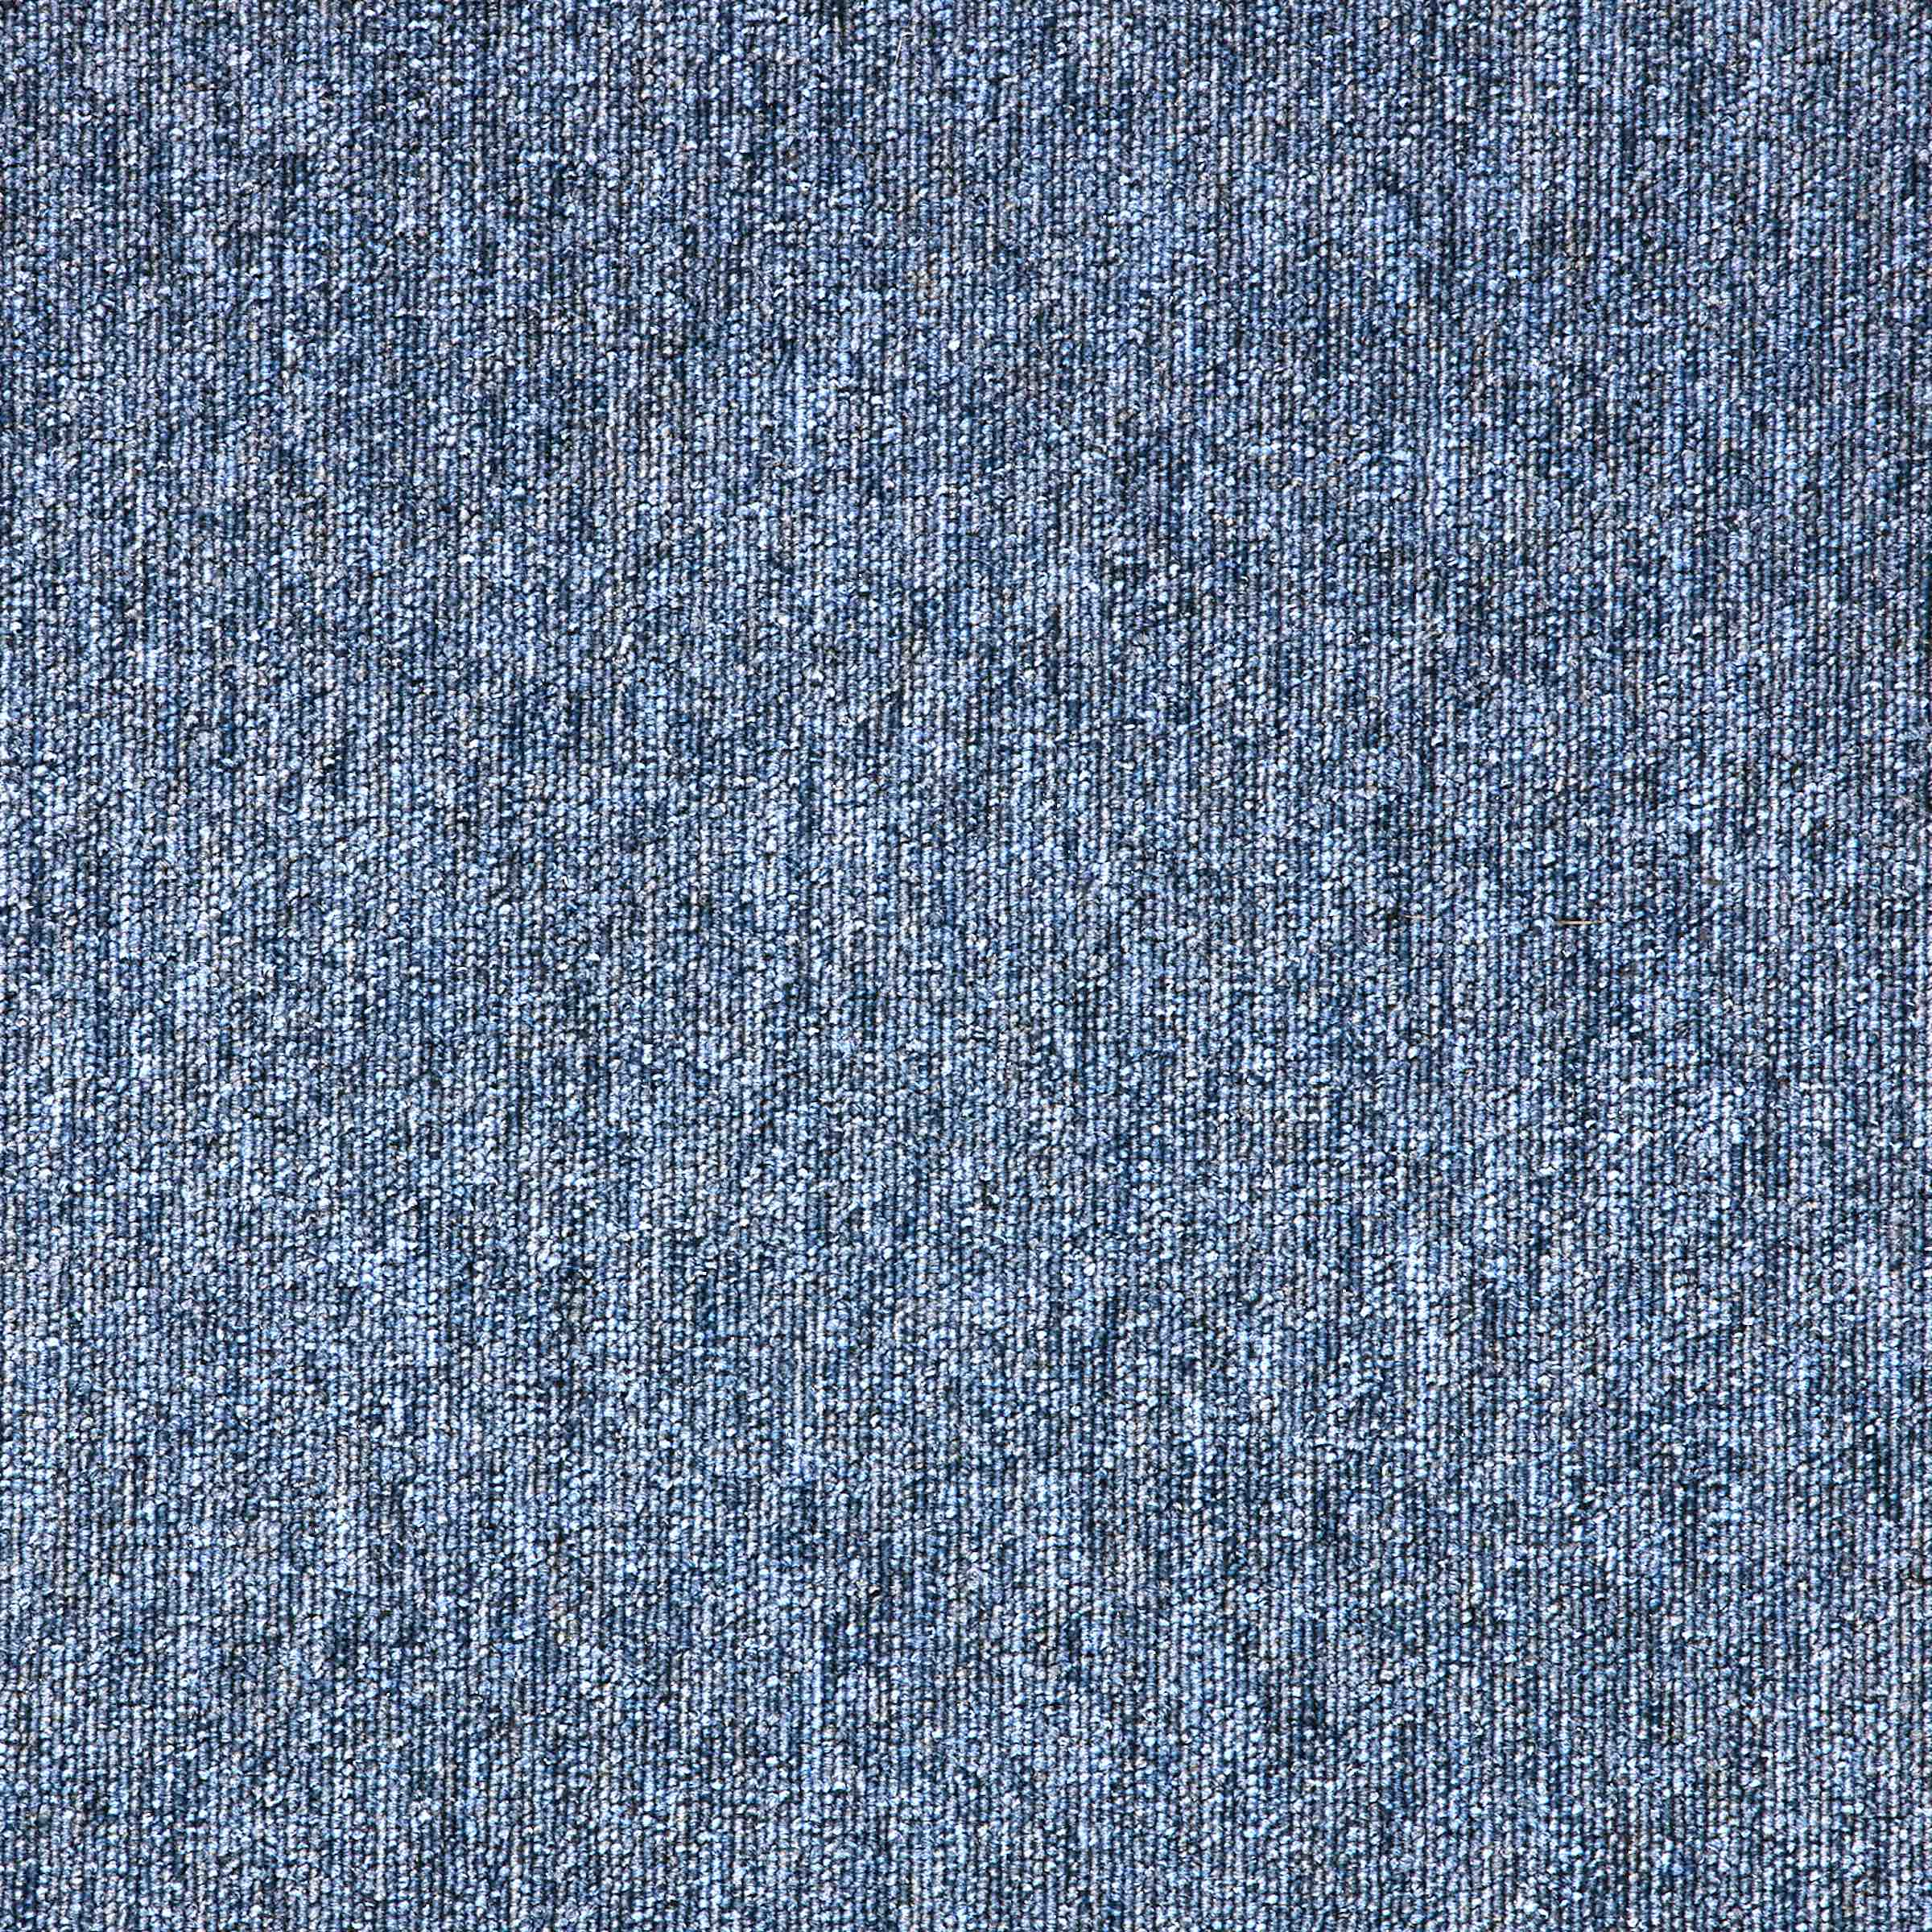 Macaw | Aegean | Paragon Carpet Tiles | Commercial Carpet Tiles